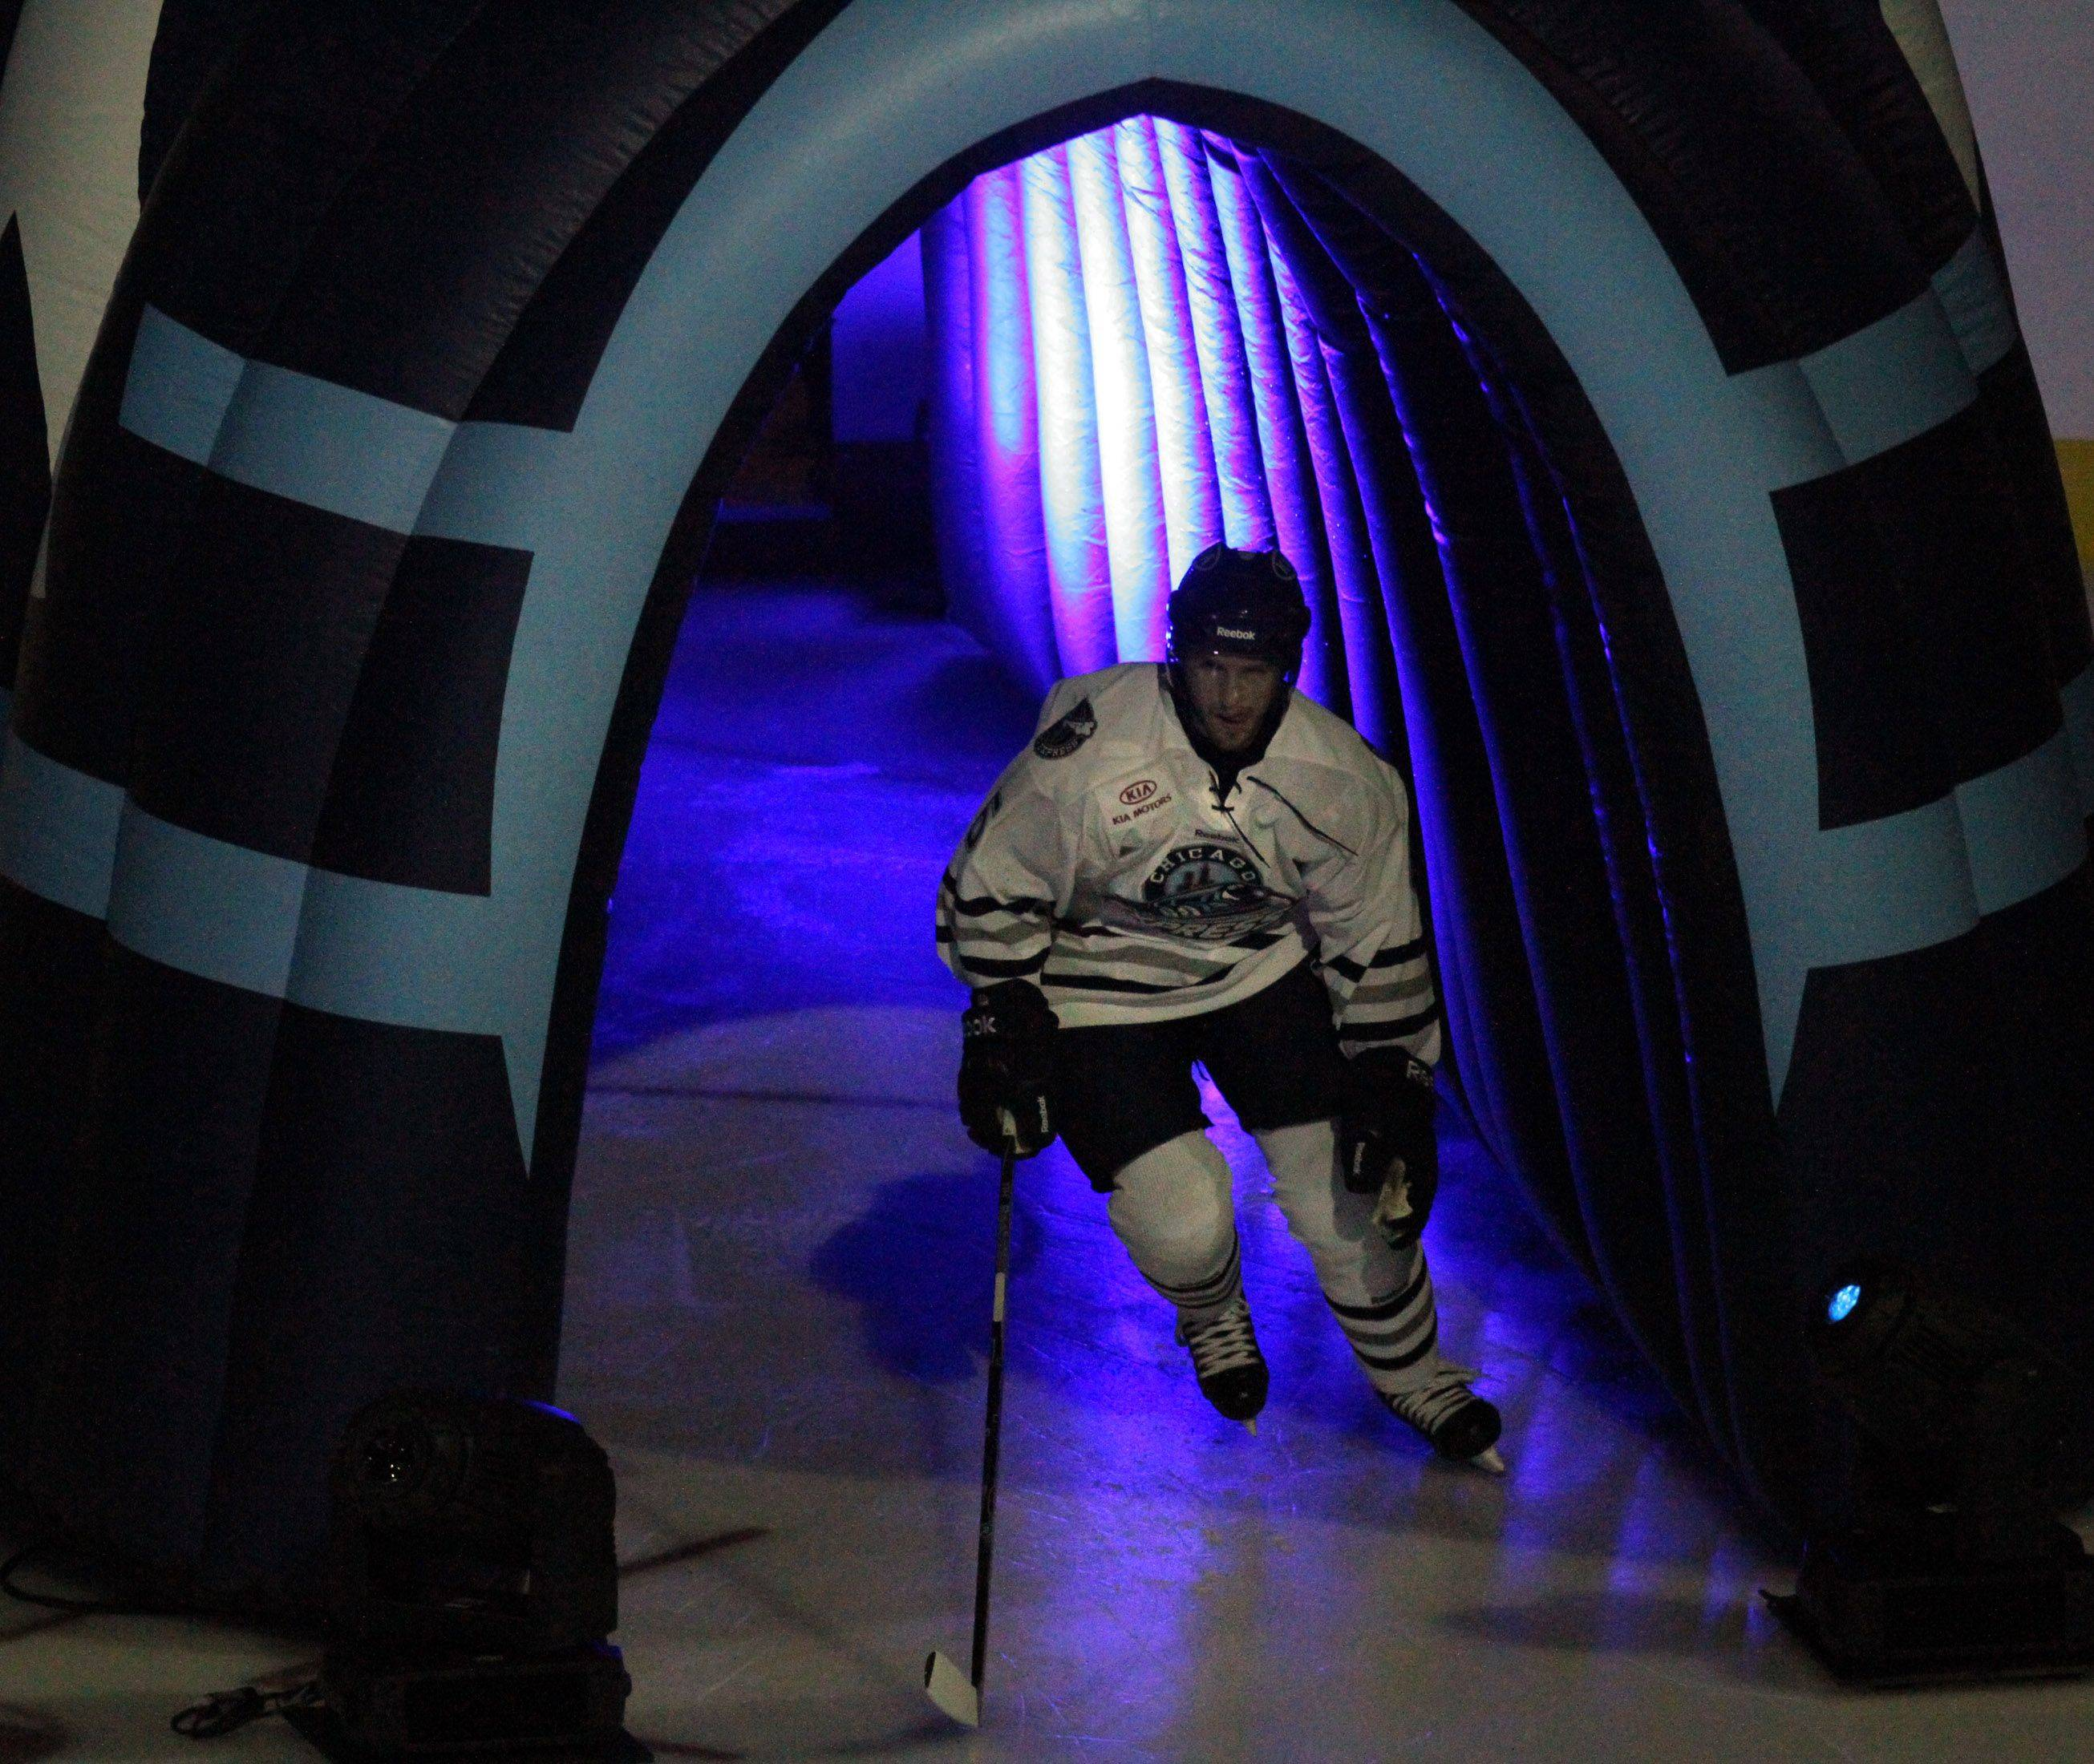 Chicago Express defenseman Darcy Campbell enters the ice for the home opener against Kalamazoo Wings Sears.